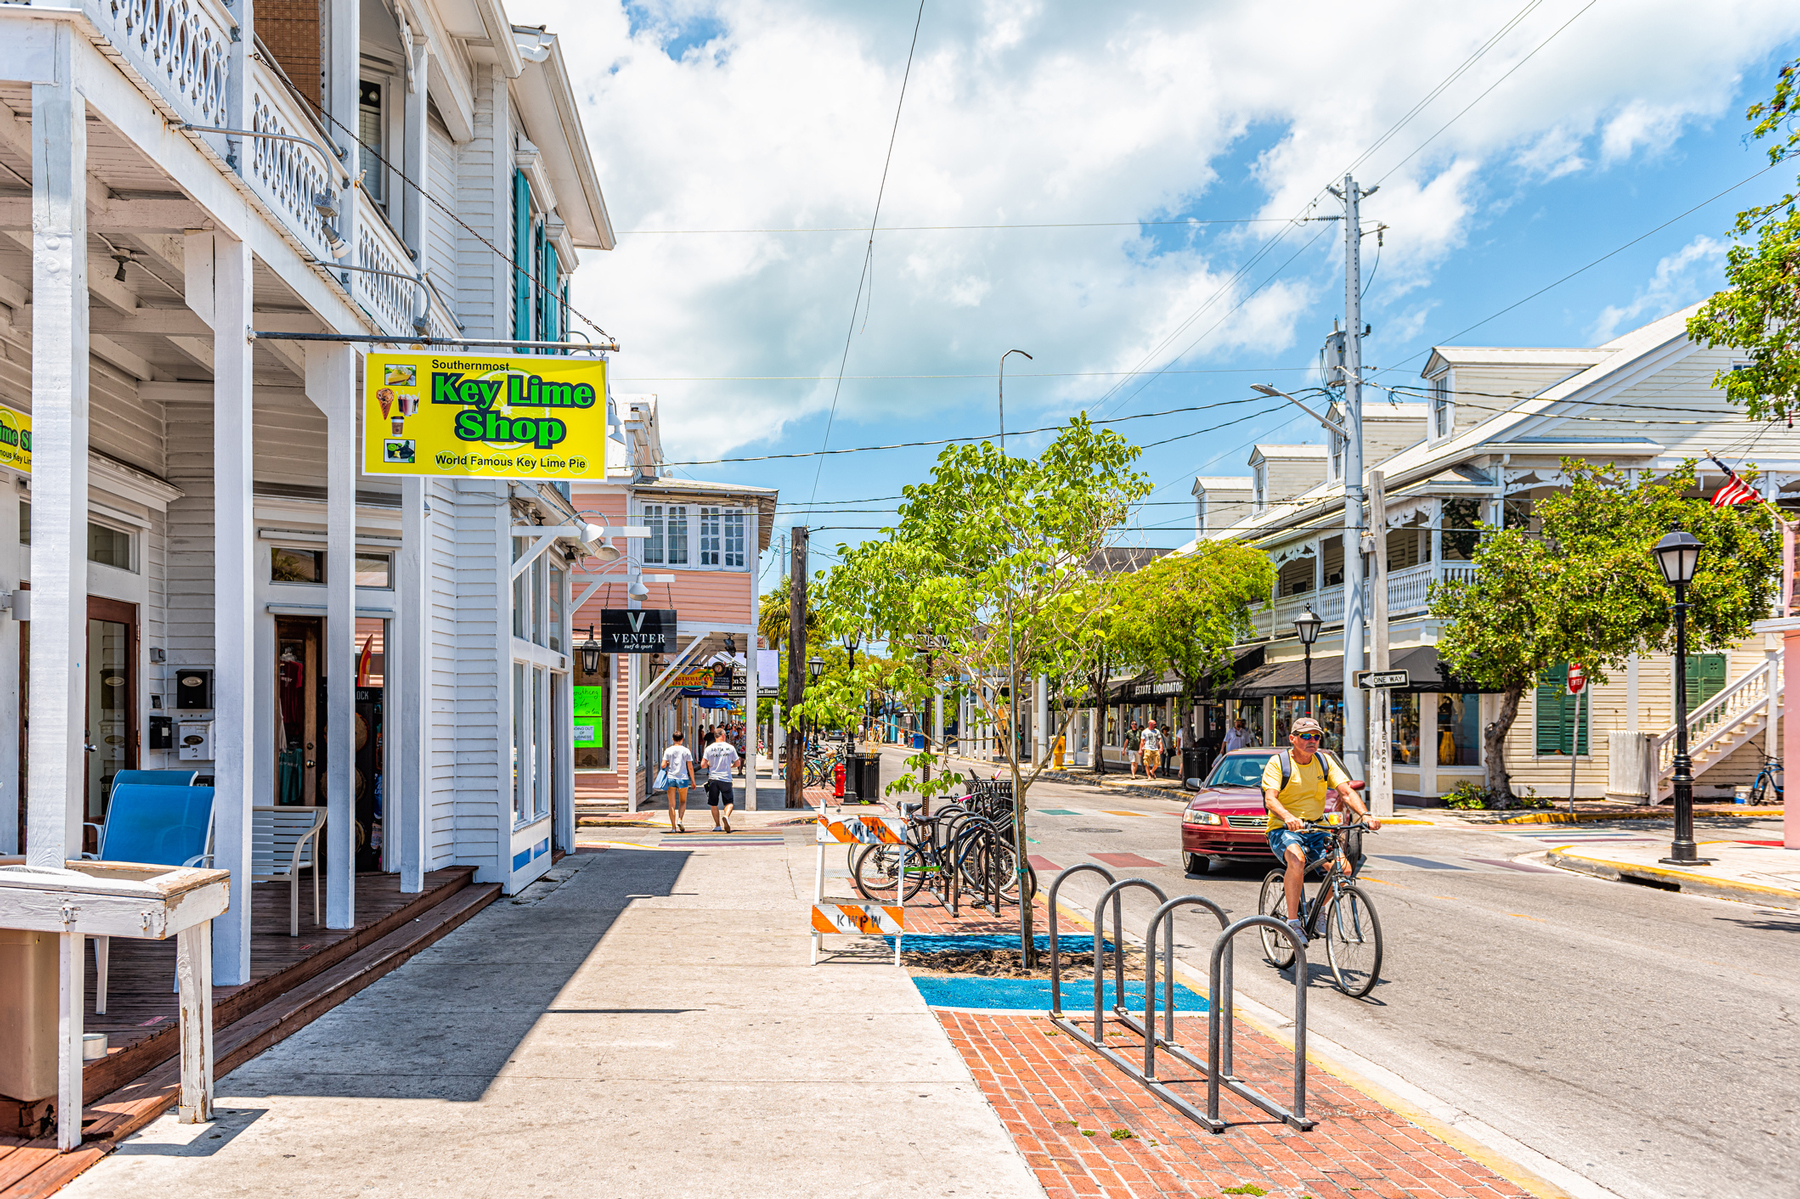 Key West street by key lime pie shop store cafe or restaurant in Florida keys city on sunny summer day